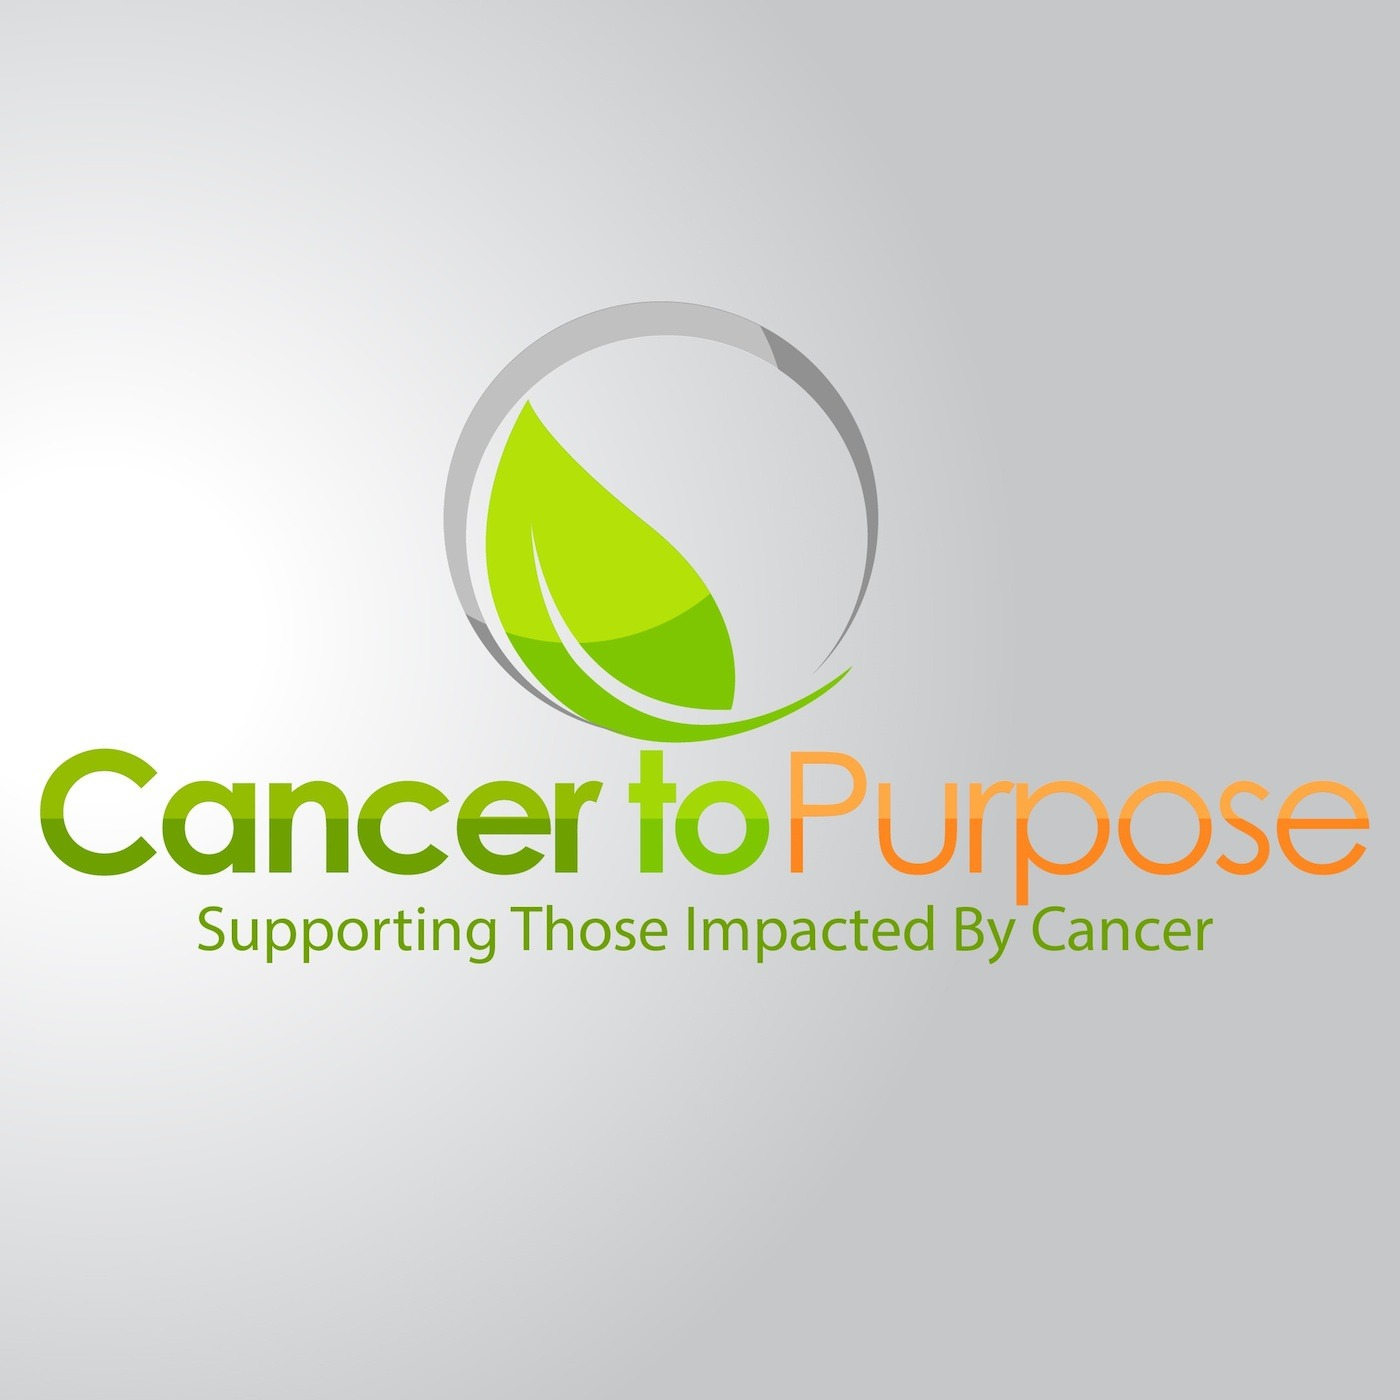 Cancer To Purpose